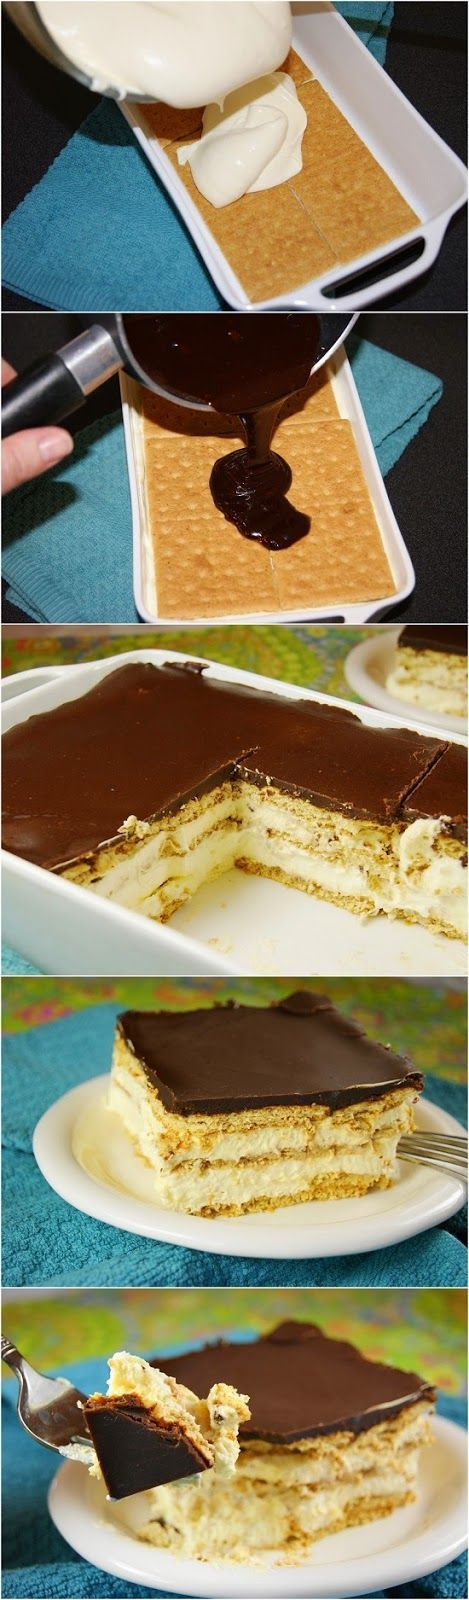 No Bake Eclair Cake. My mom used to make this. Will have to see if this is the same recipe!